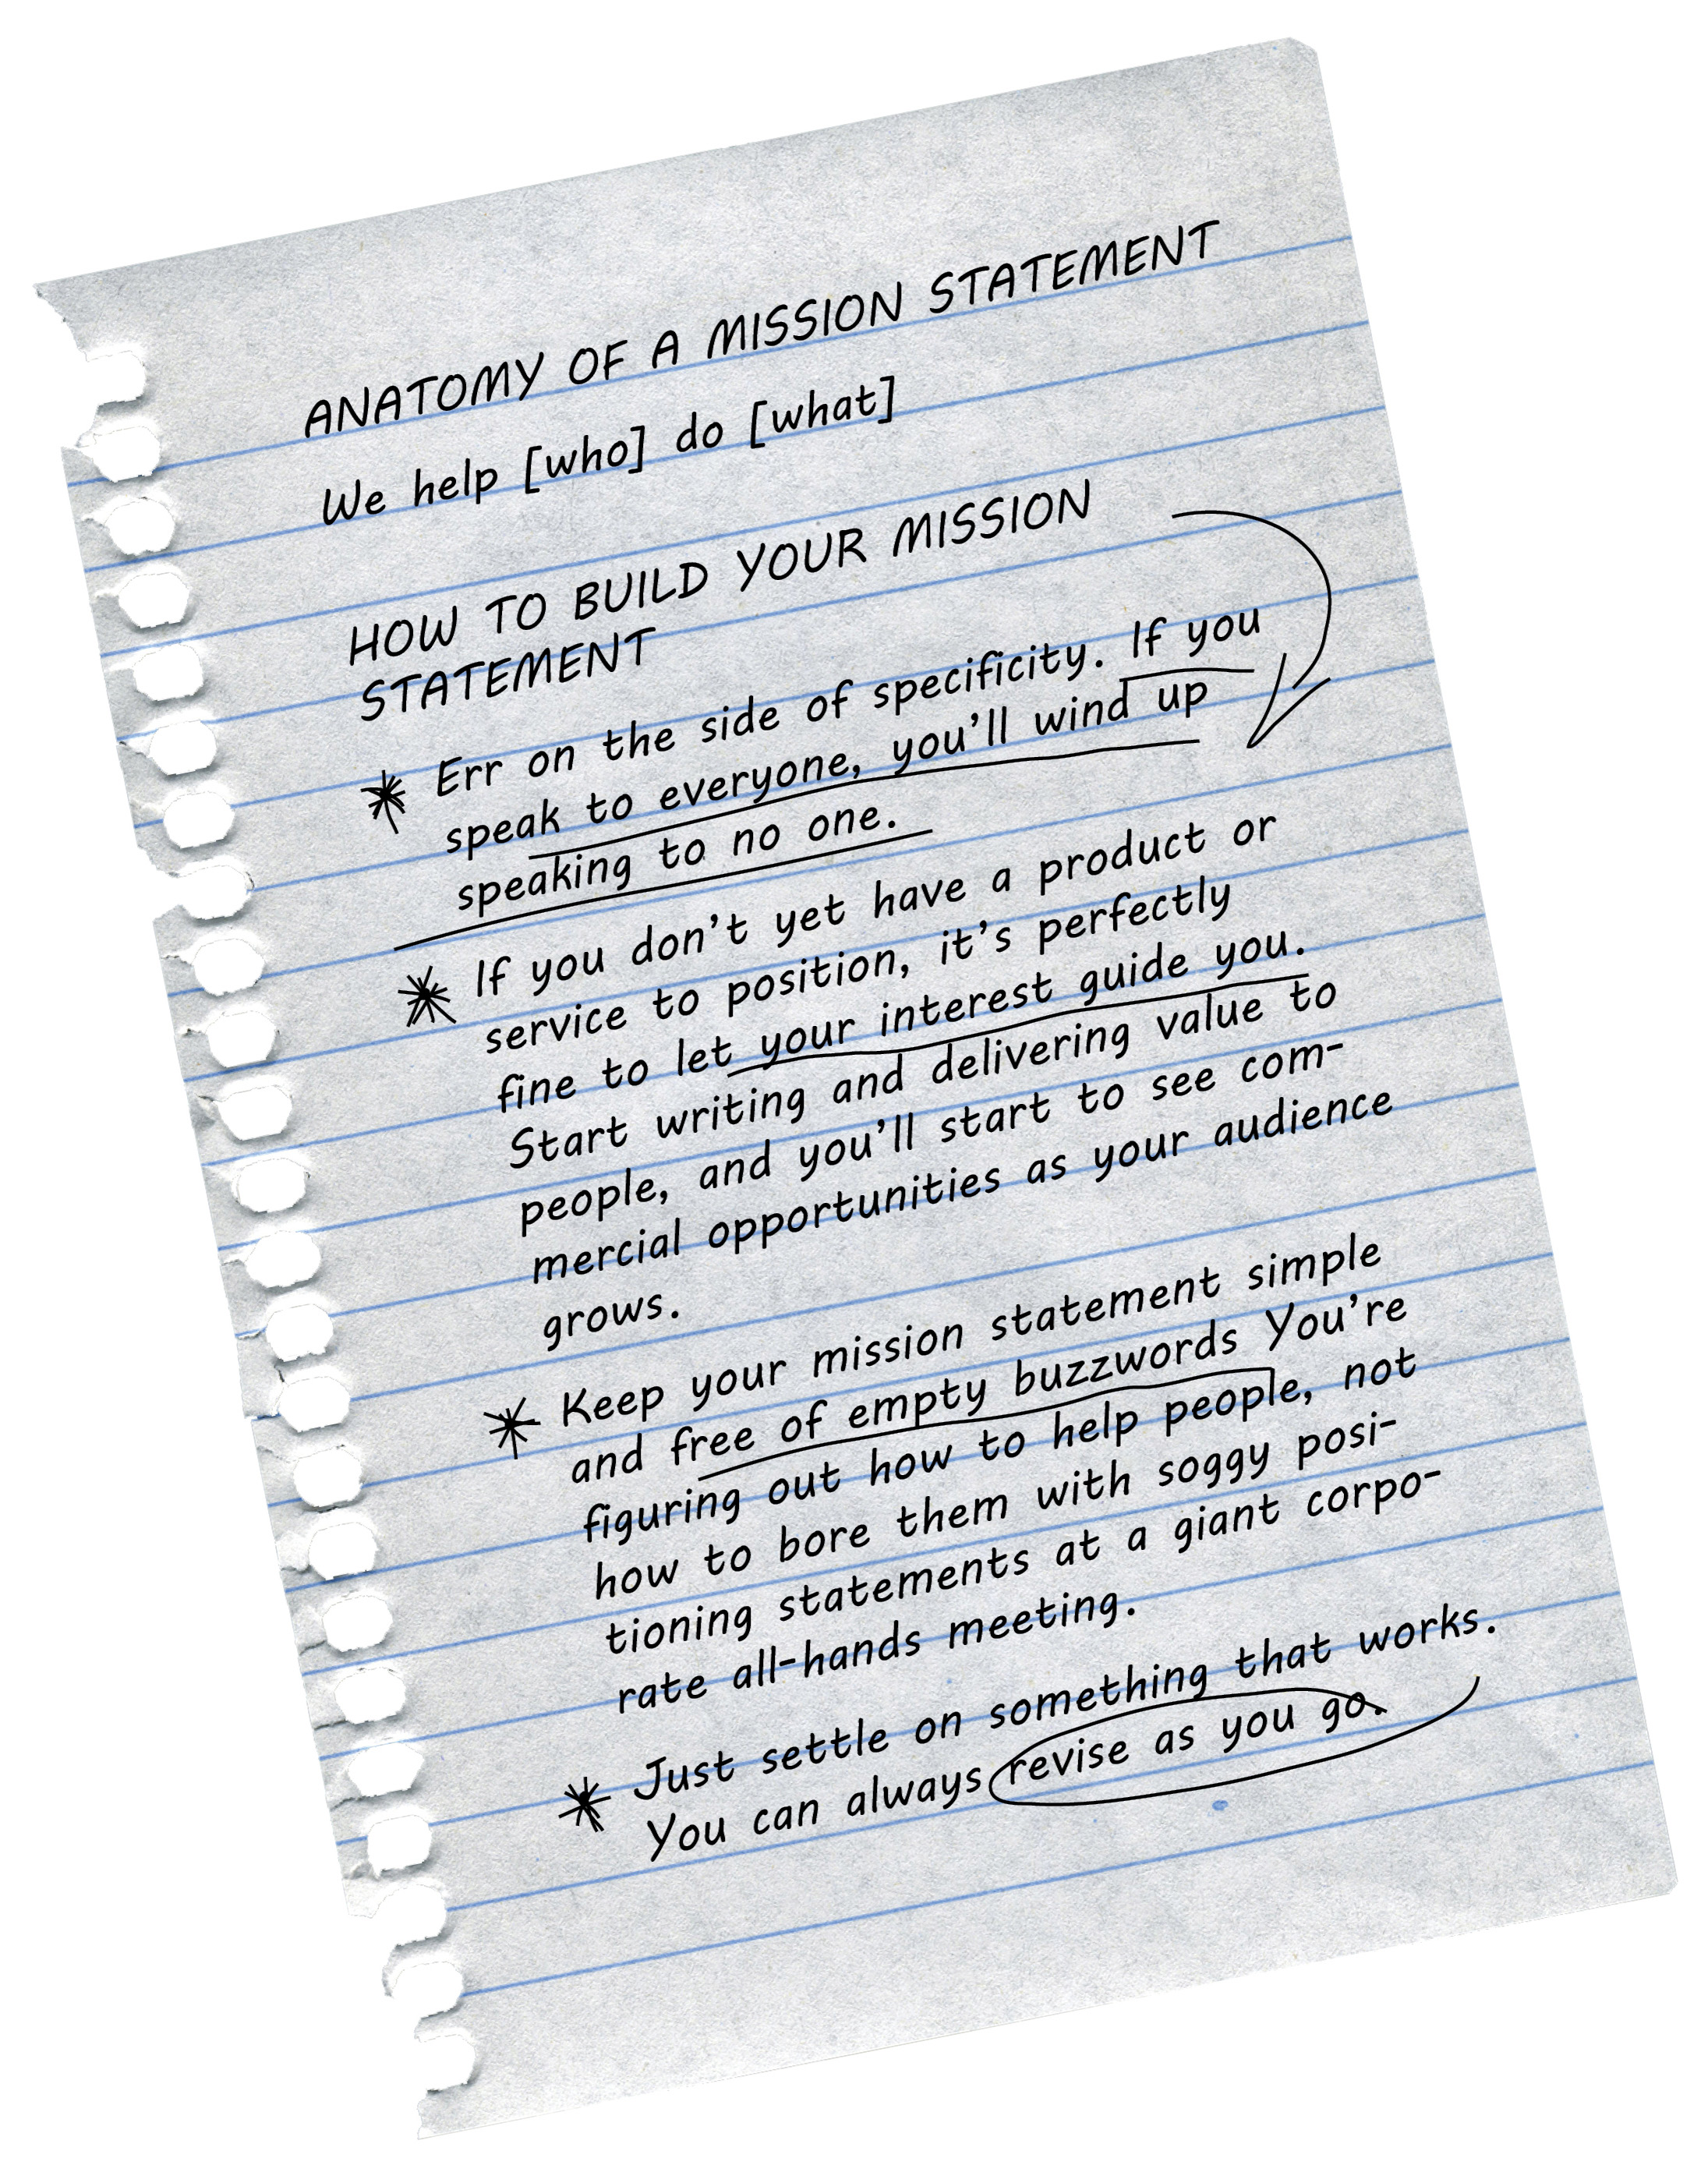 Text from Anatomy of a Mission Statement and How to Build Your Mission Statement, represented as handwriting on notepaper